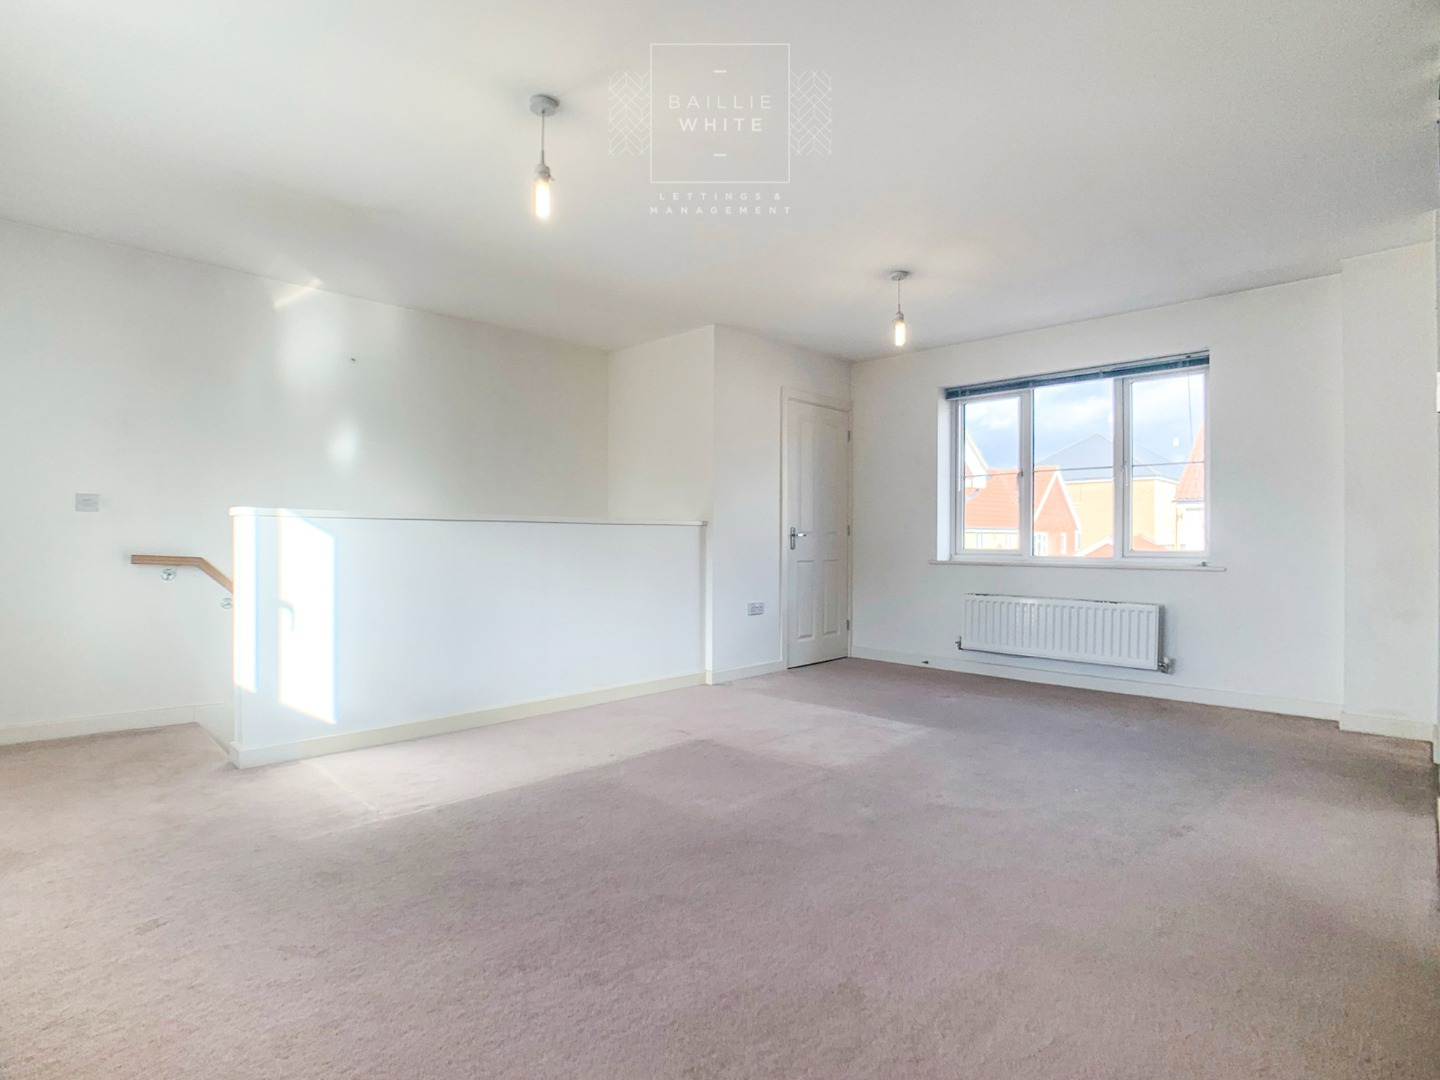 2 bed apartment to rent in Liddell Drive, Basildon SS14 2